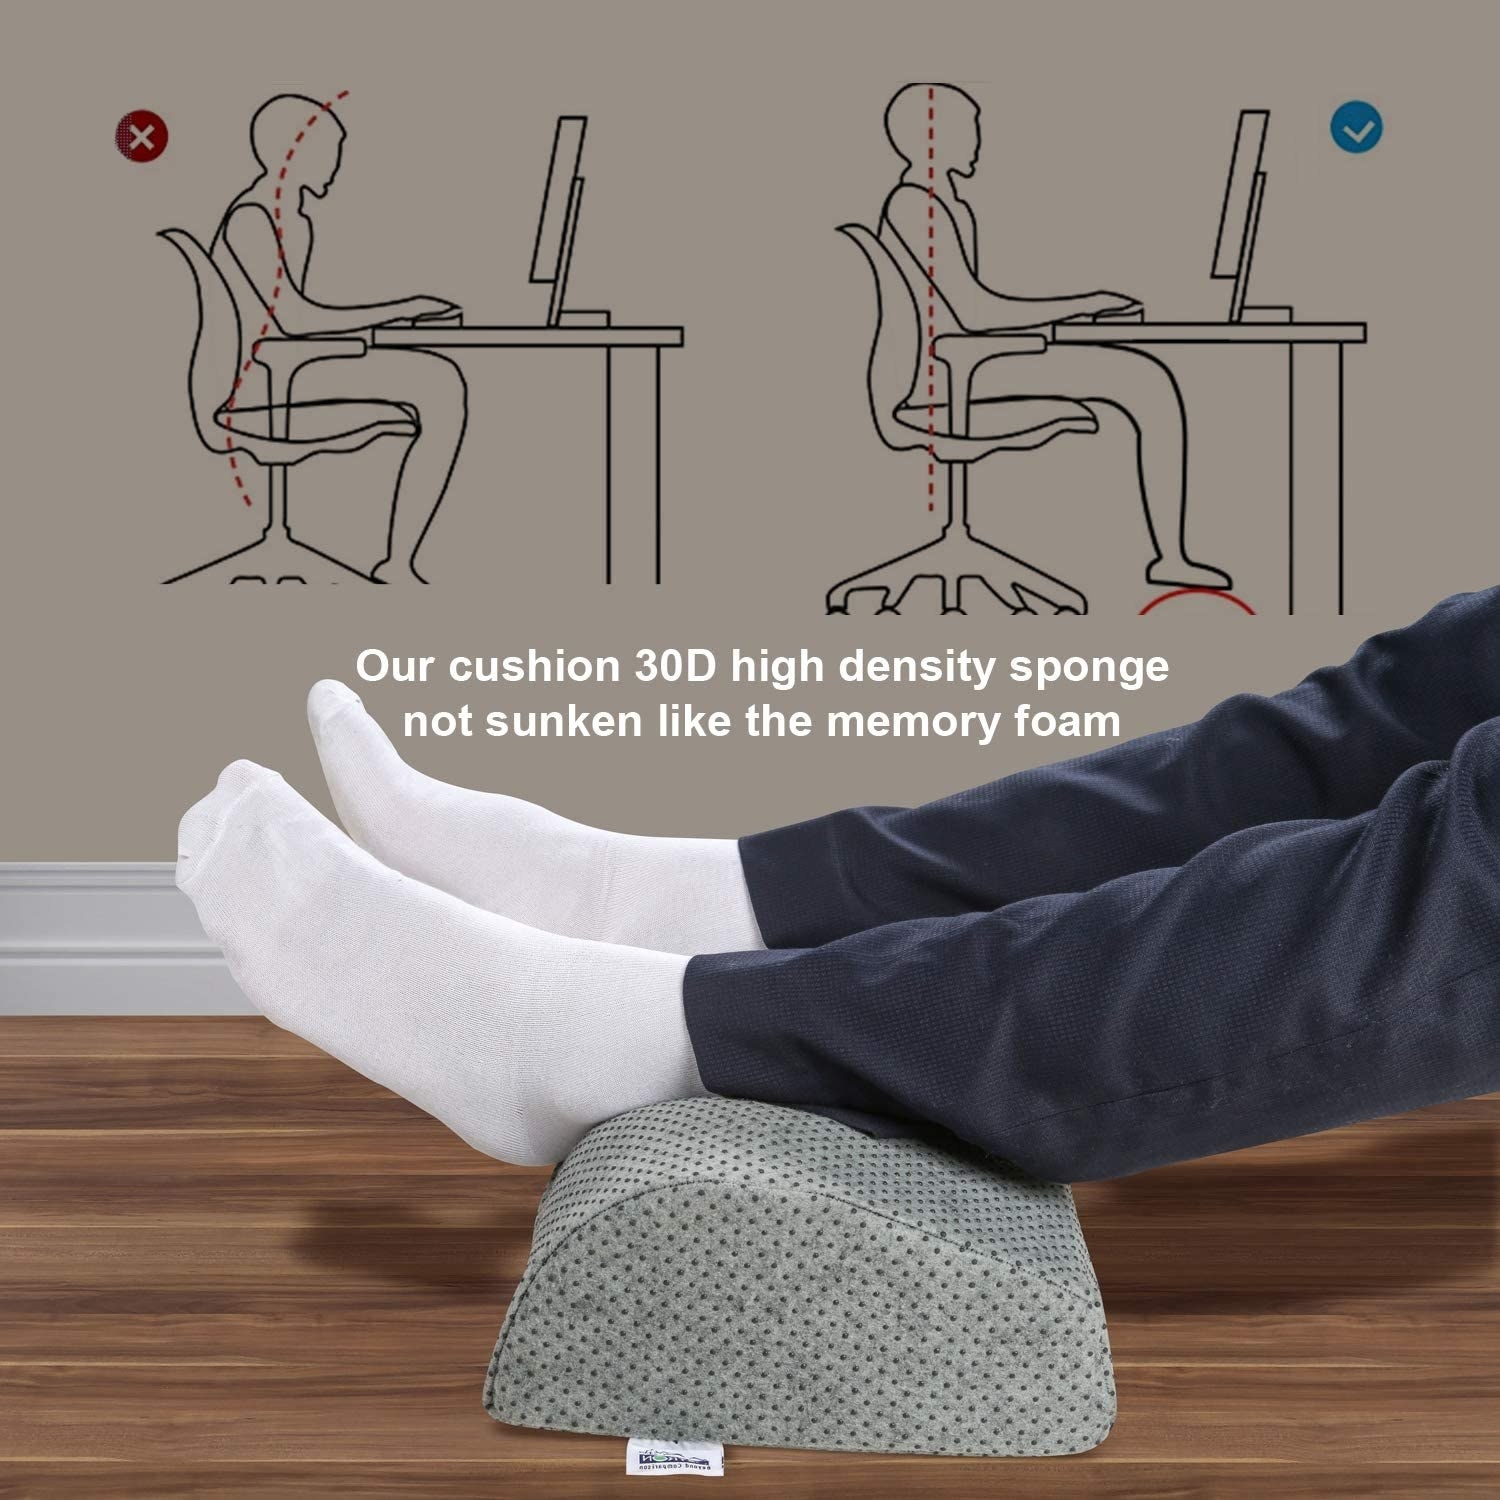 A person with their feet resting on the cushion